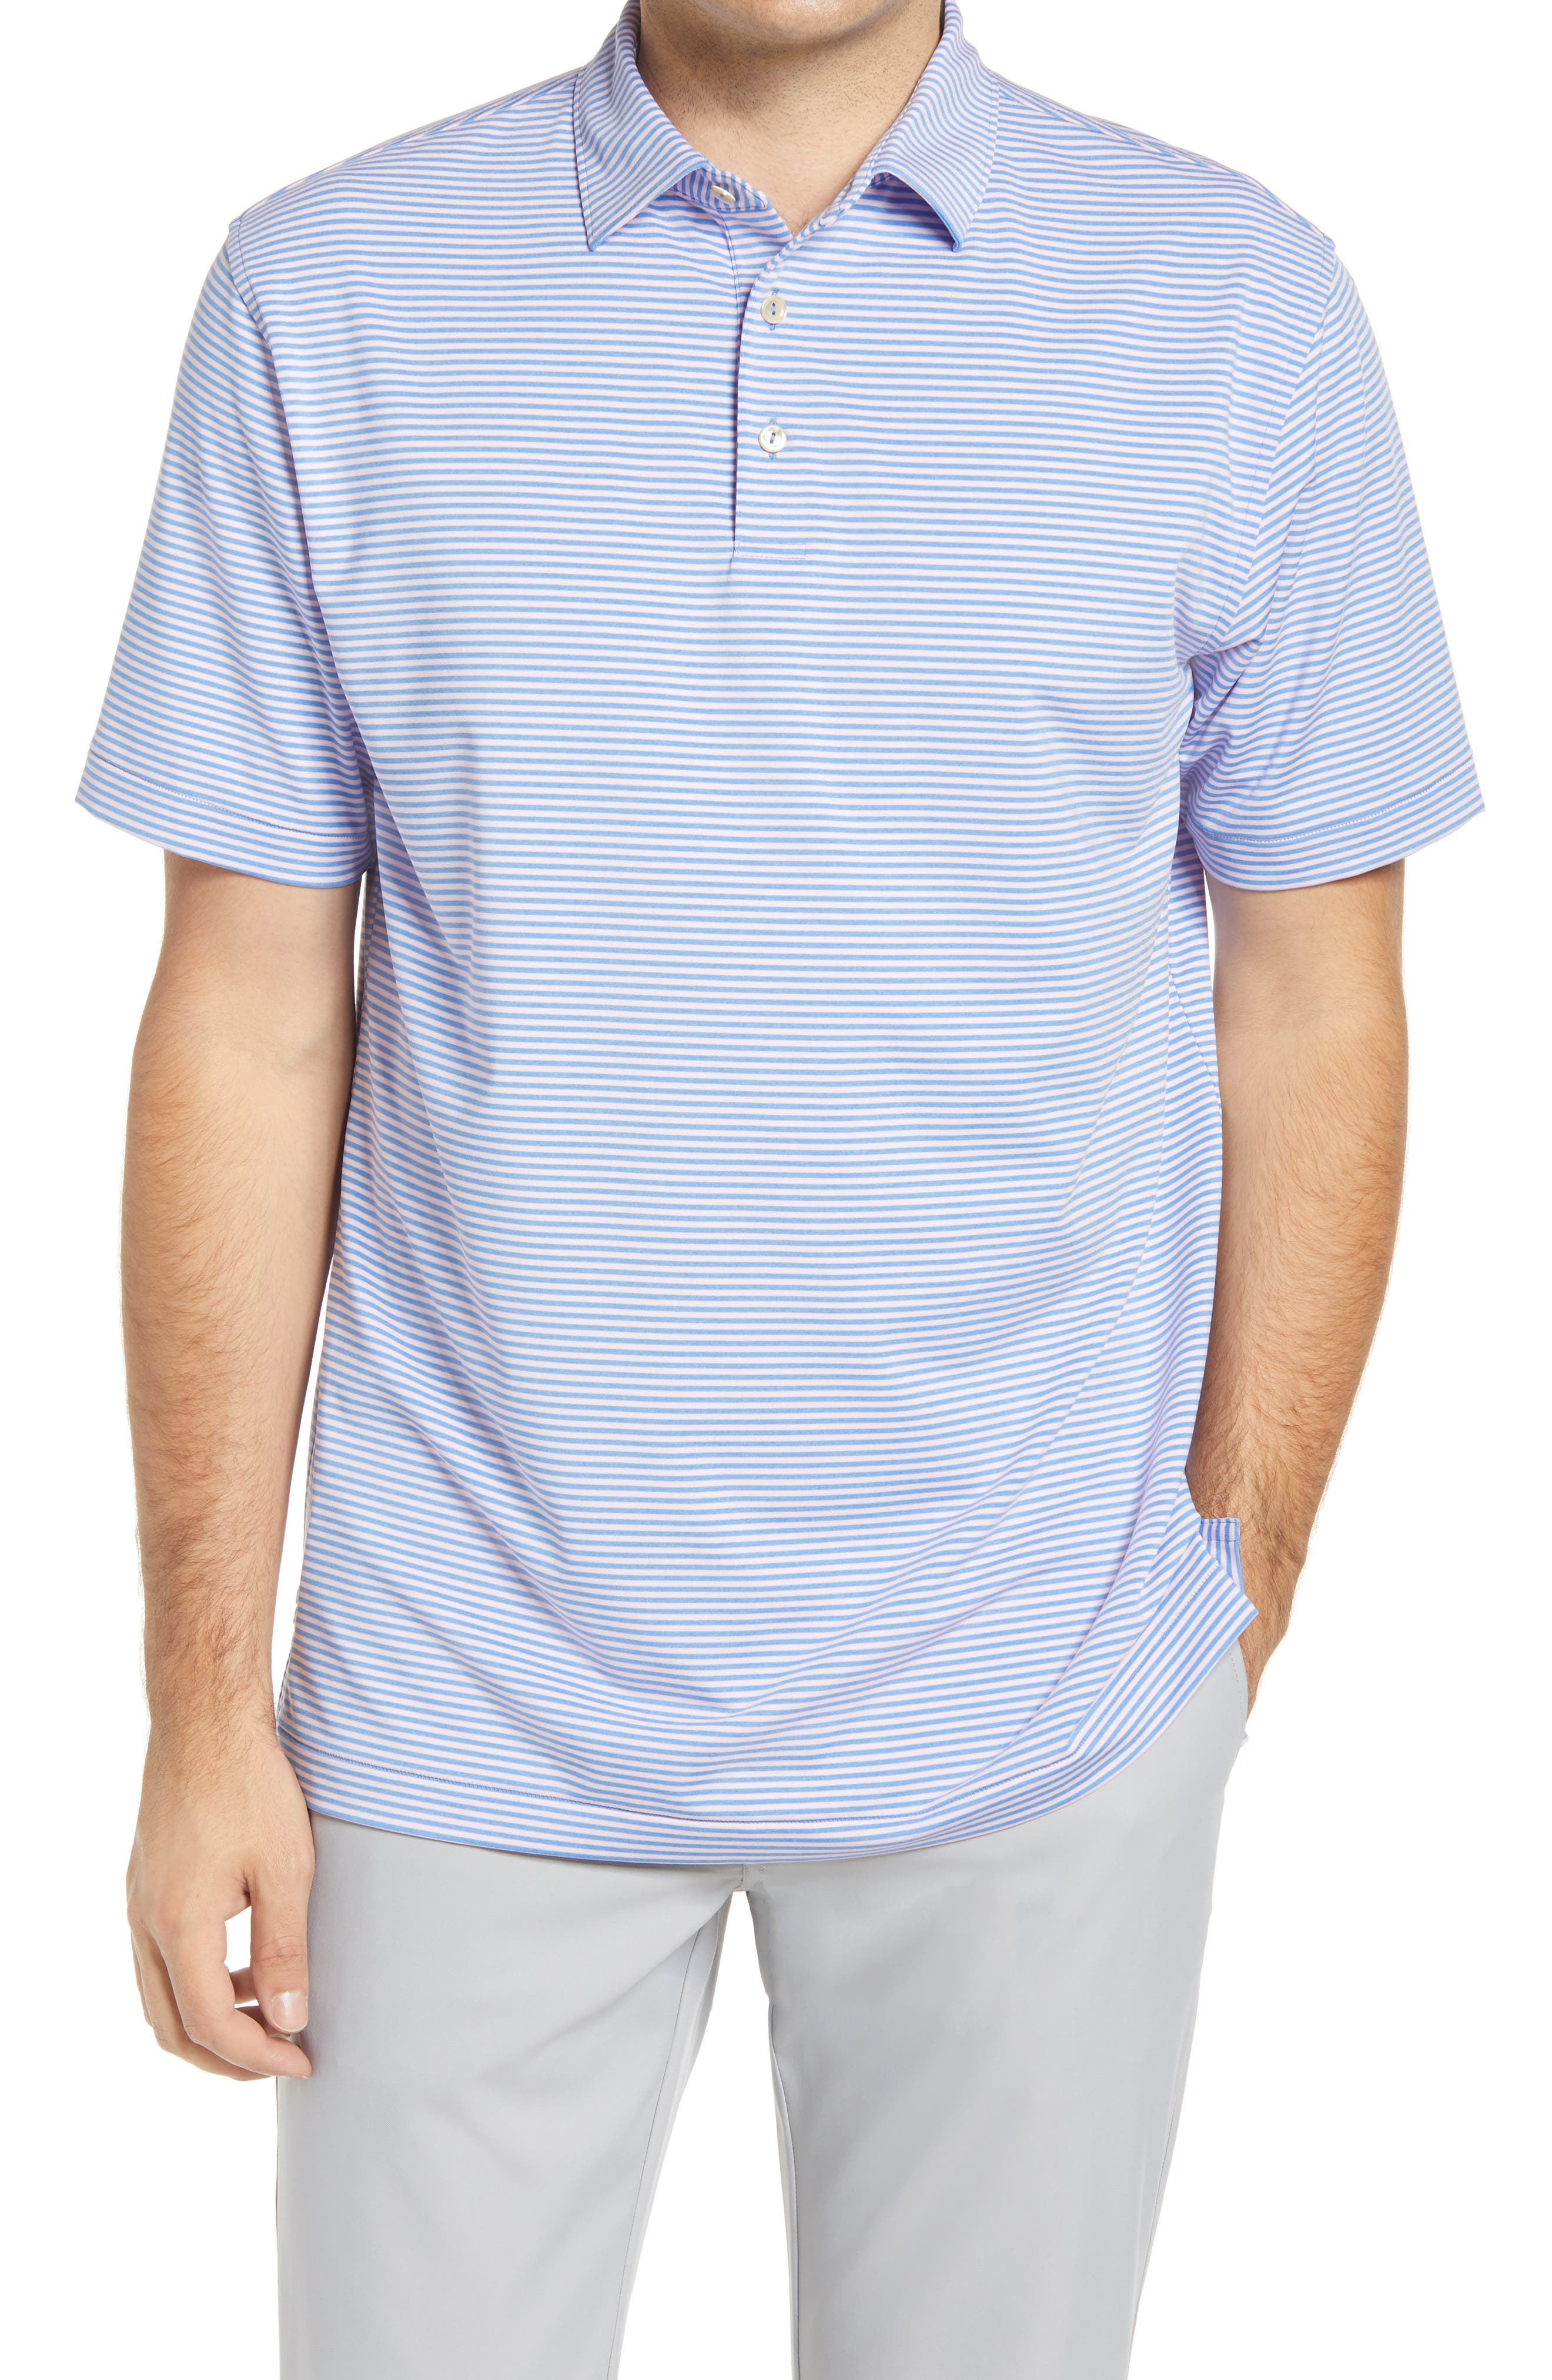 Stretchy, moisture-wicking fabric keeps up with you all day in a comfortably cut polo that offers added sun protection and helps keep odors at bay. Style Name: Peter Millar Hales Stripe Short Sleeve Performance Polo. Style Number: 6053354. Available in stores.